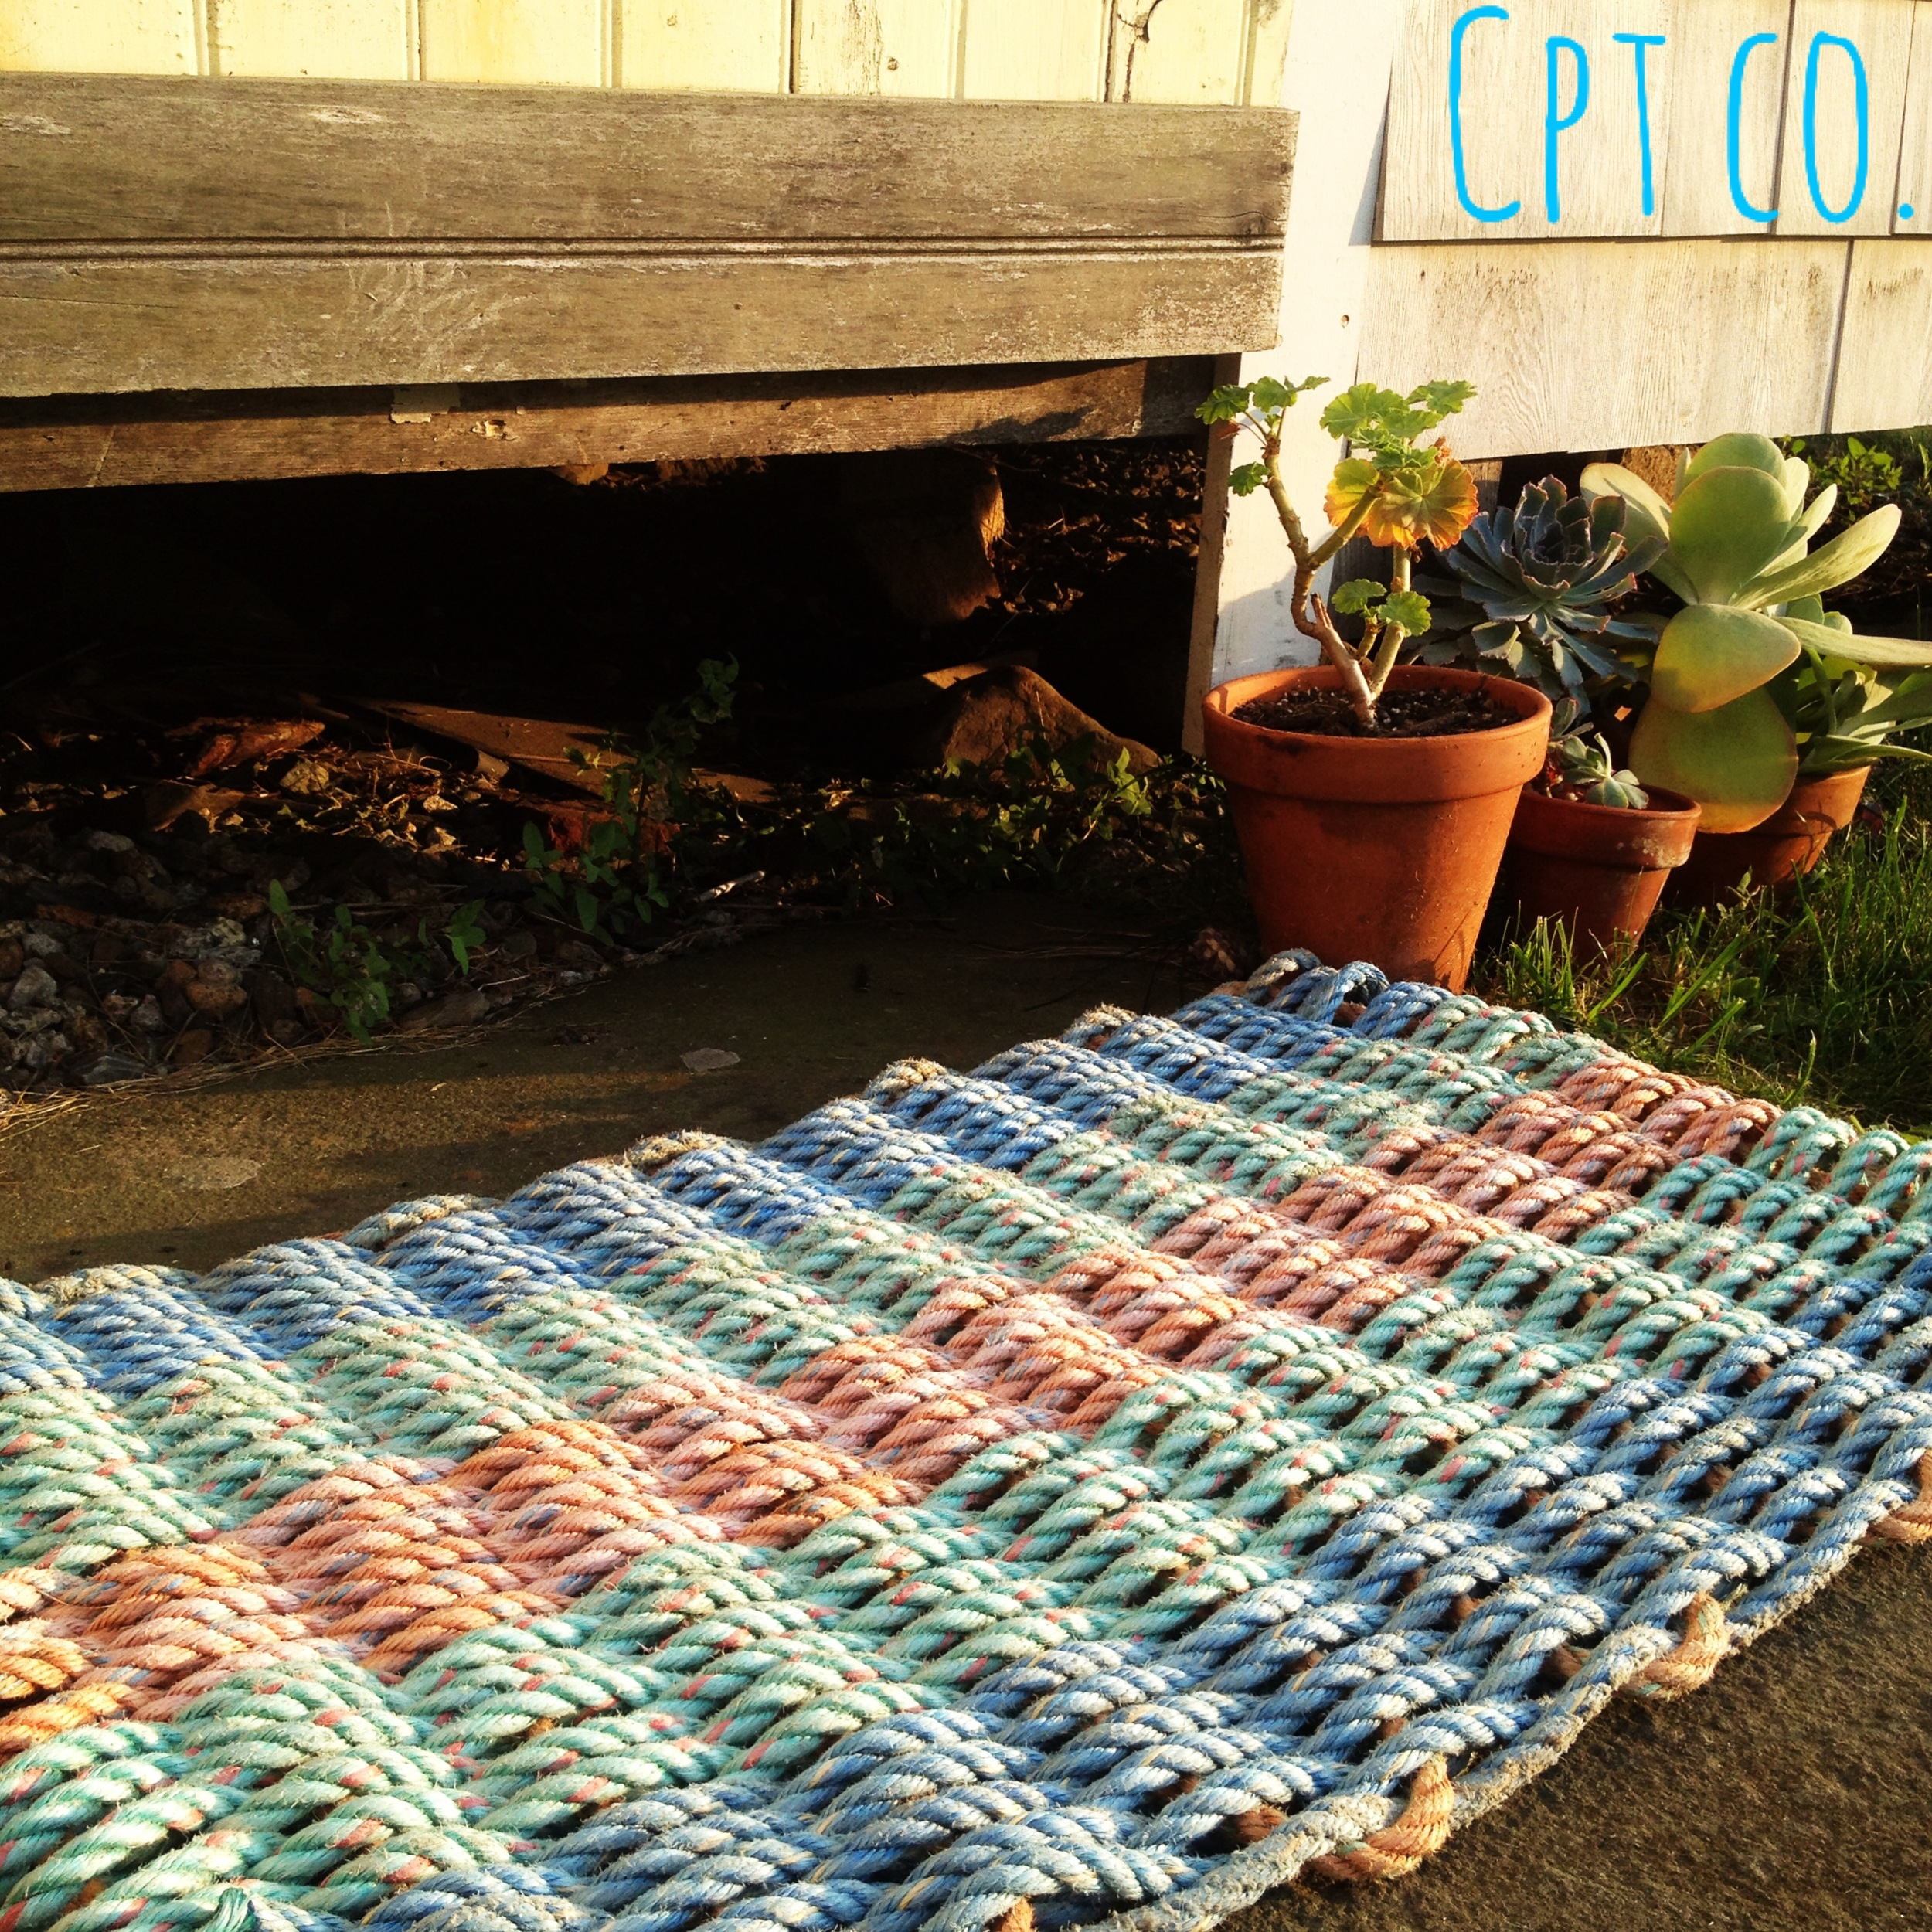 Vinalhaven: Item# 5-14108S: Small - Light Blue, Light Green & Creamsicle Recycled Sea Rope Doormat